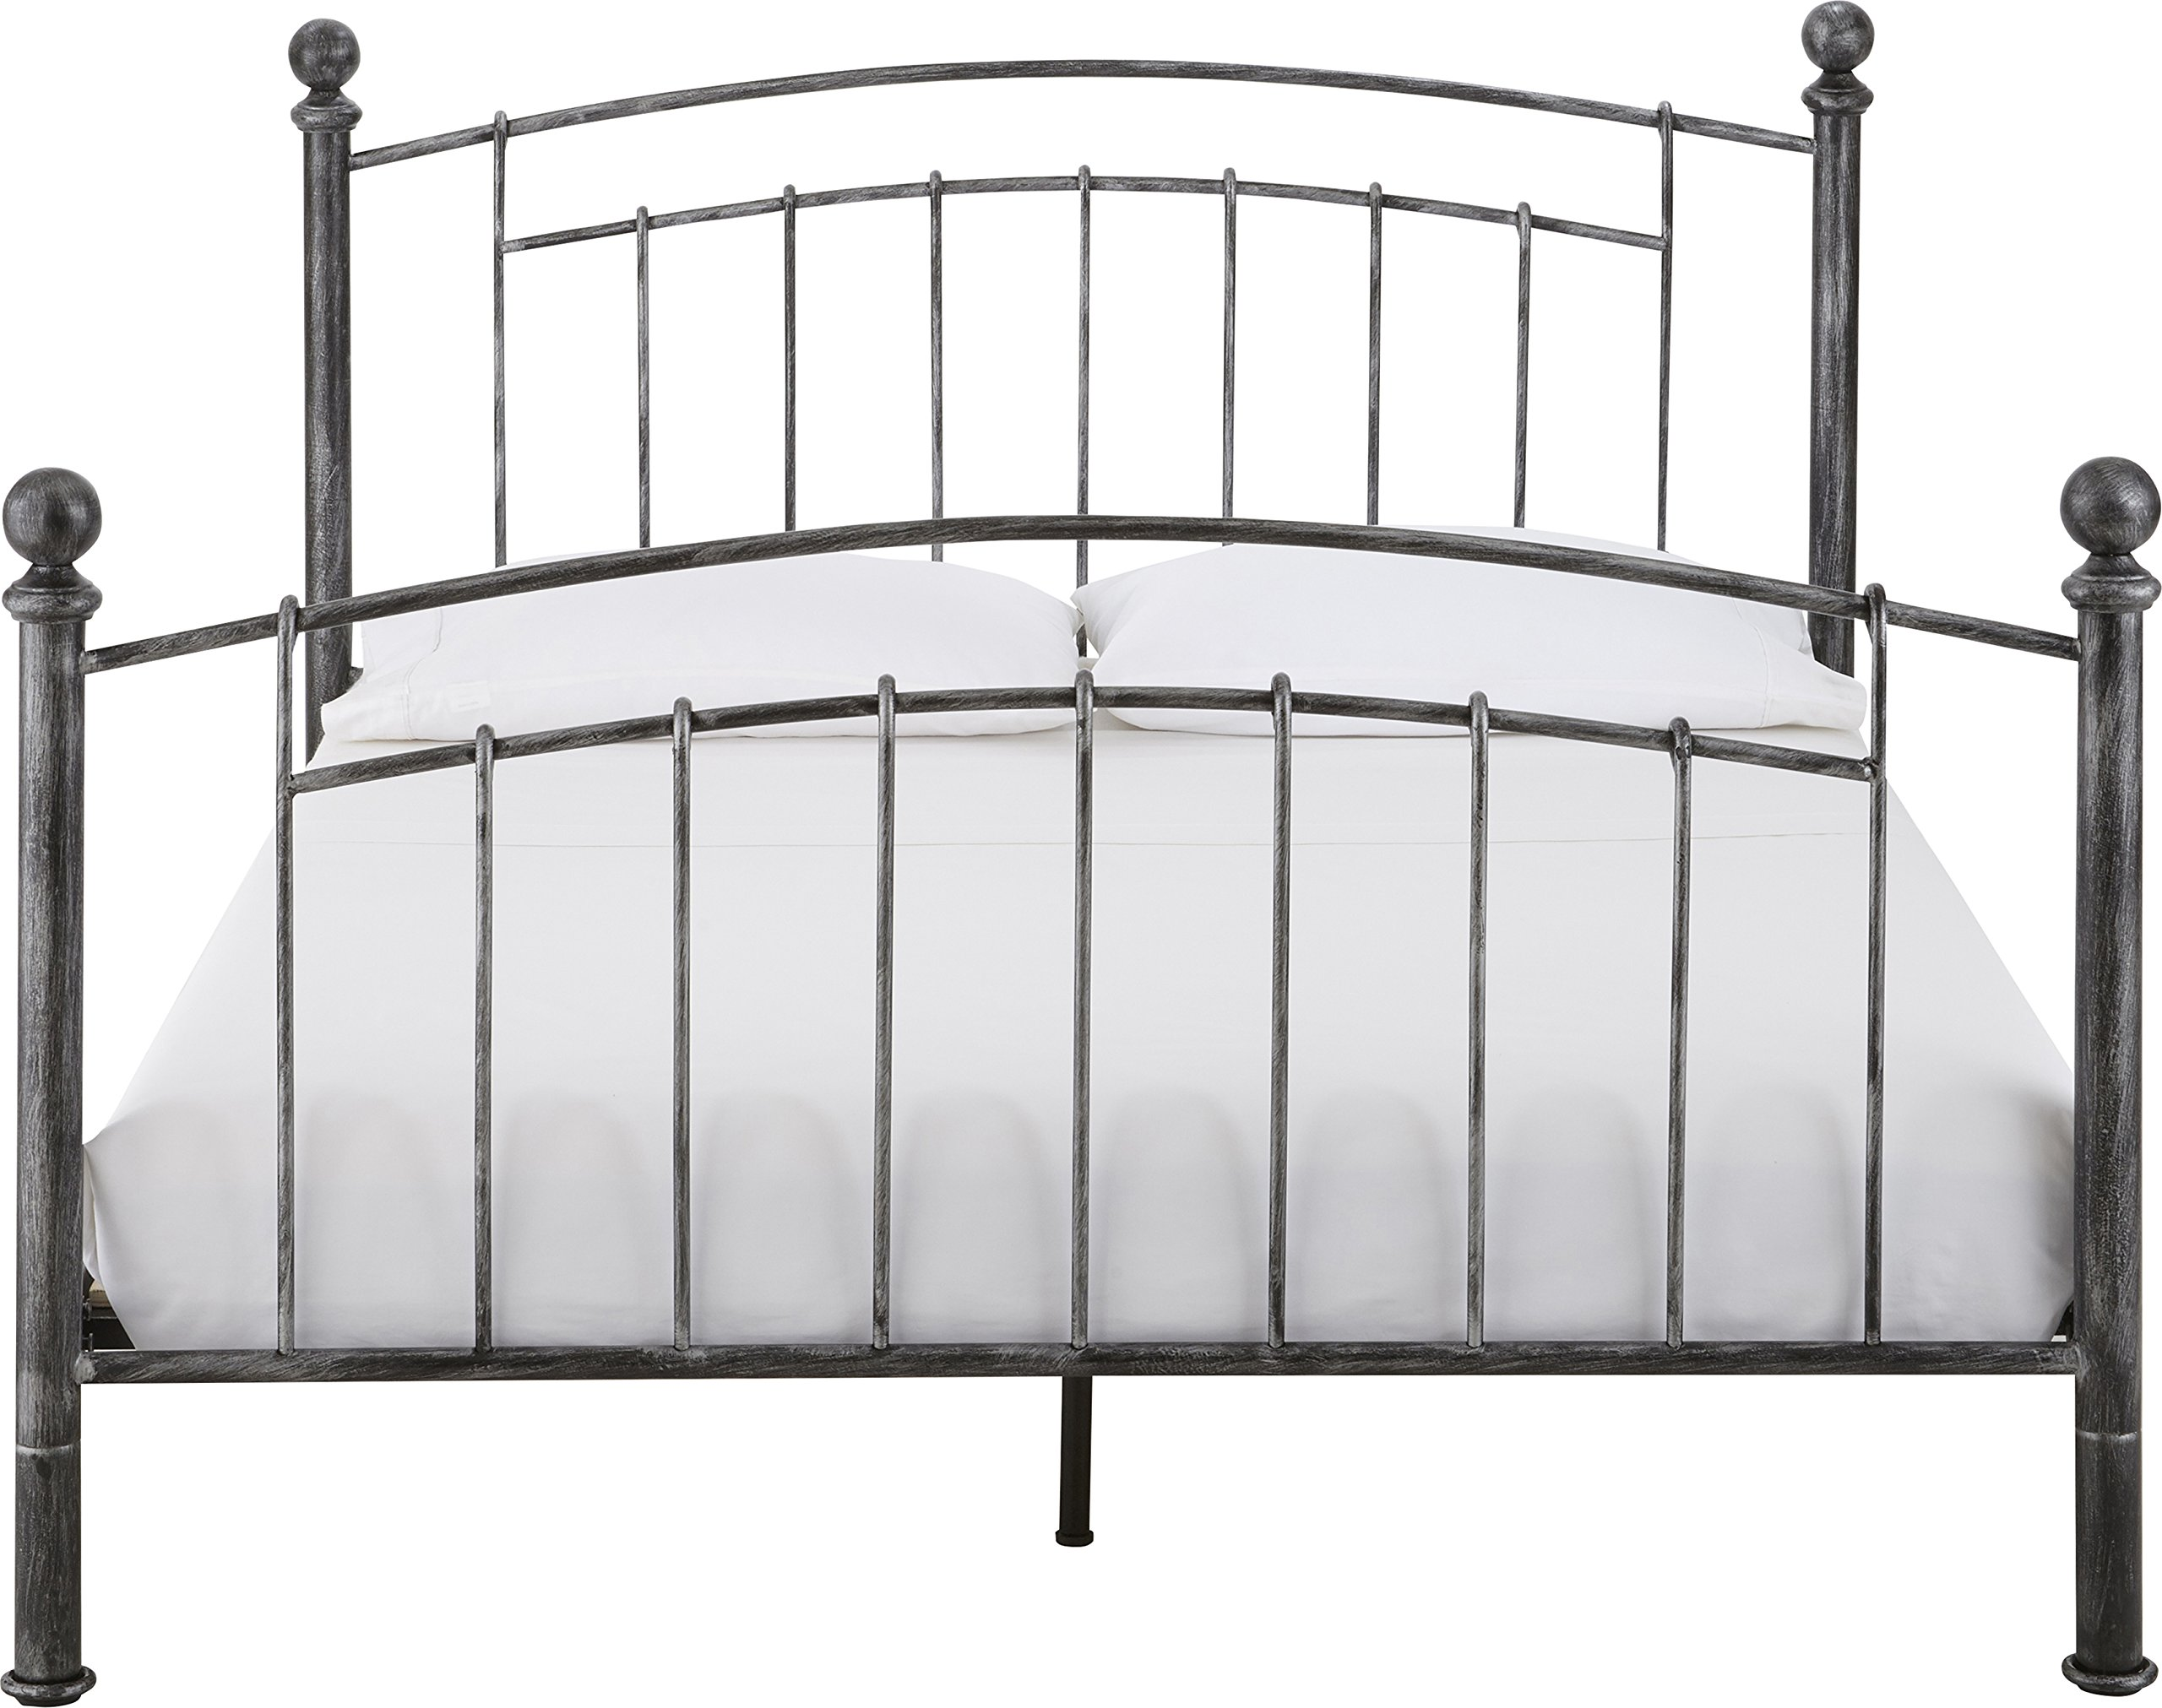 Flex Form Chandler Metal Platform Bed Frame / Mattress Foundation with Headboard and Footboard, Queen by Flex Form (Image #5)